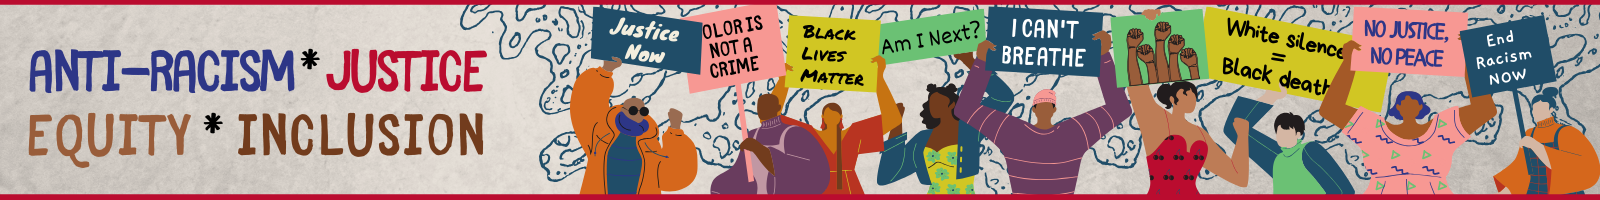 "Banner for anti-racism, Justice, Equity and Inclusion. Includes cartoon images of protesters holding signs with messages like ""black lives matter"" and ""I can't breathe"""